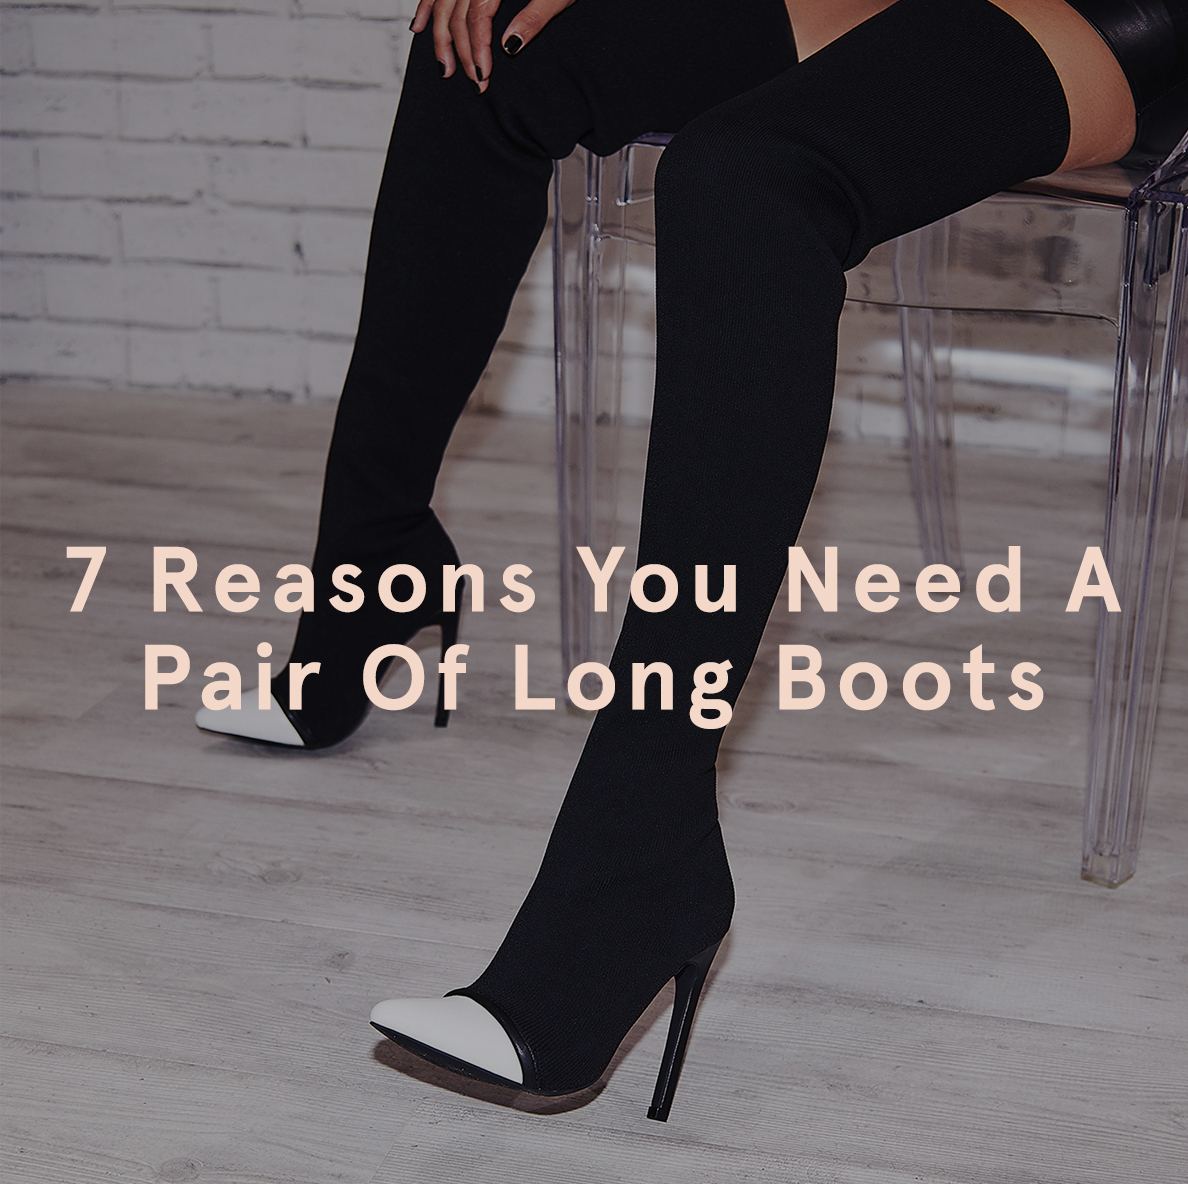 Reasons You Need A Pair Of Long Boots